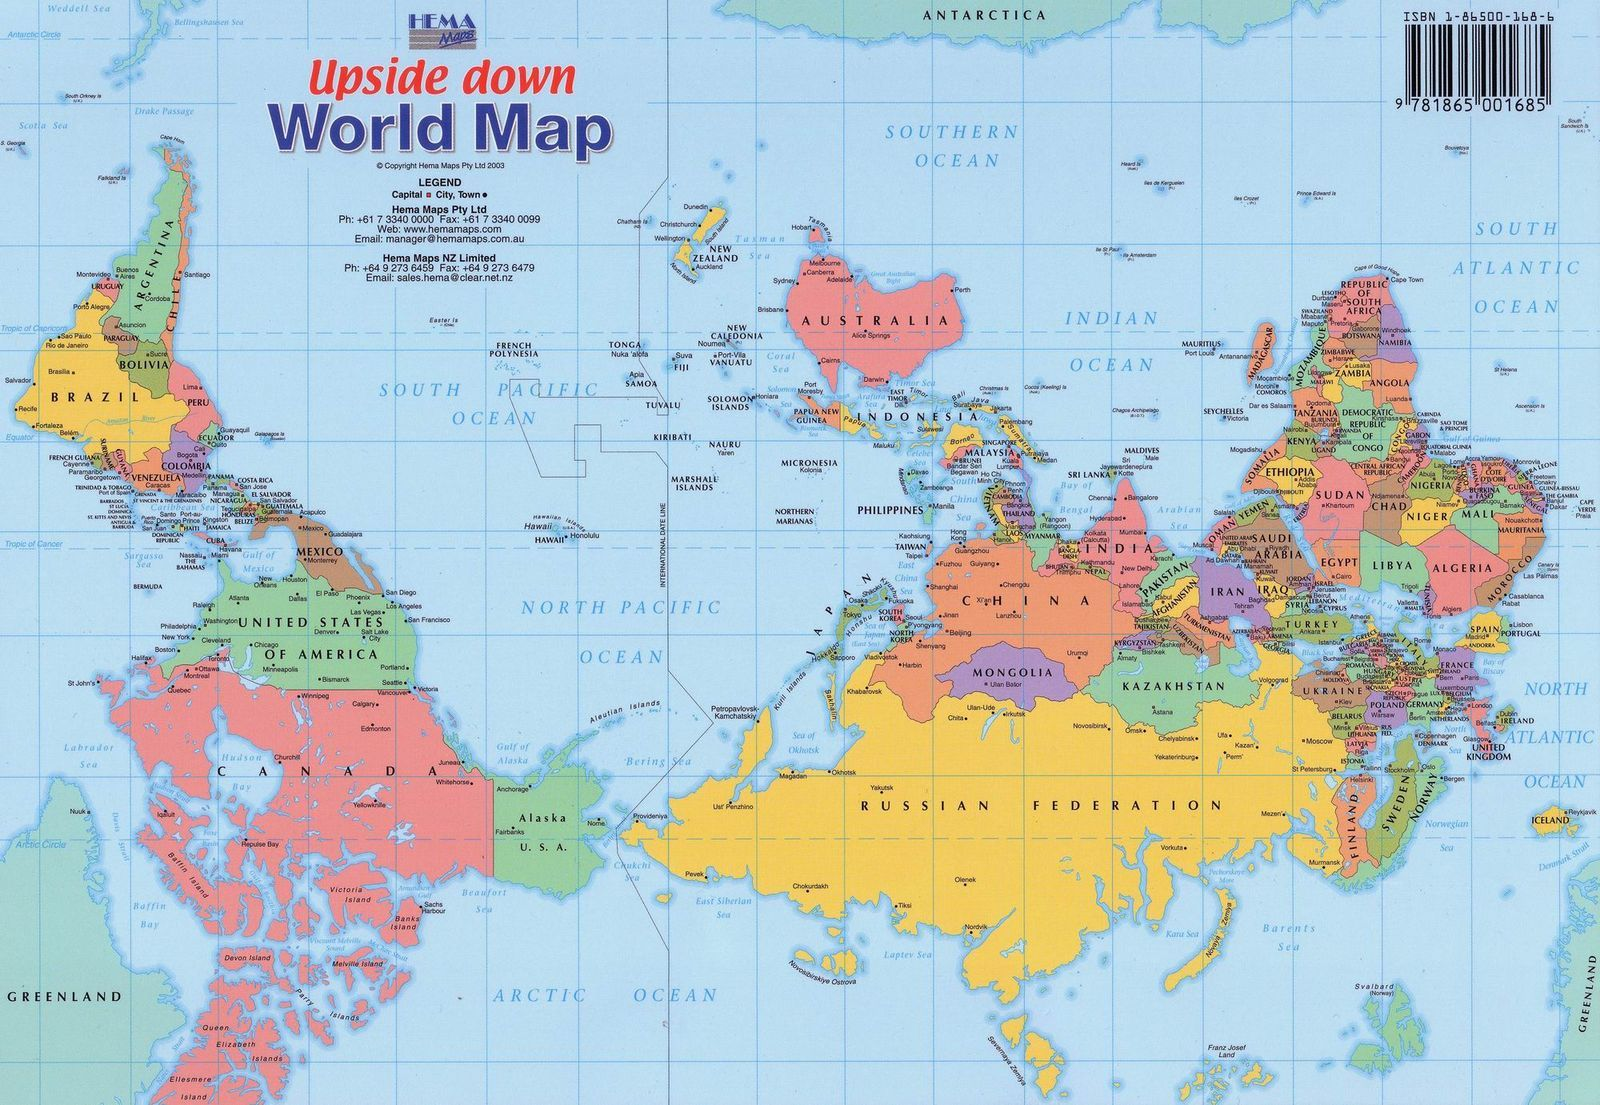 The world map according to australia new zealand brain food the world map according to australia new zealand gumiabroncs Choice Image